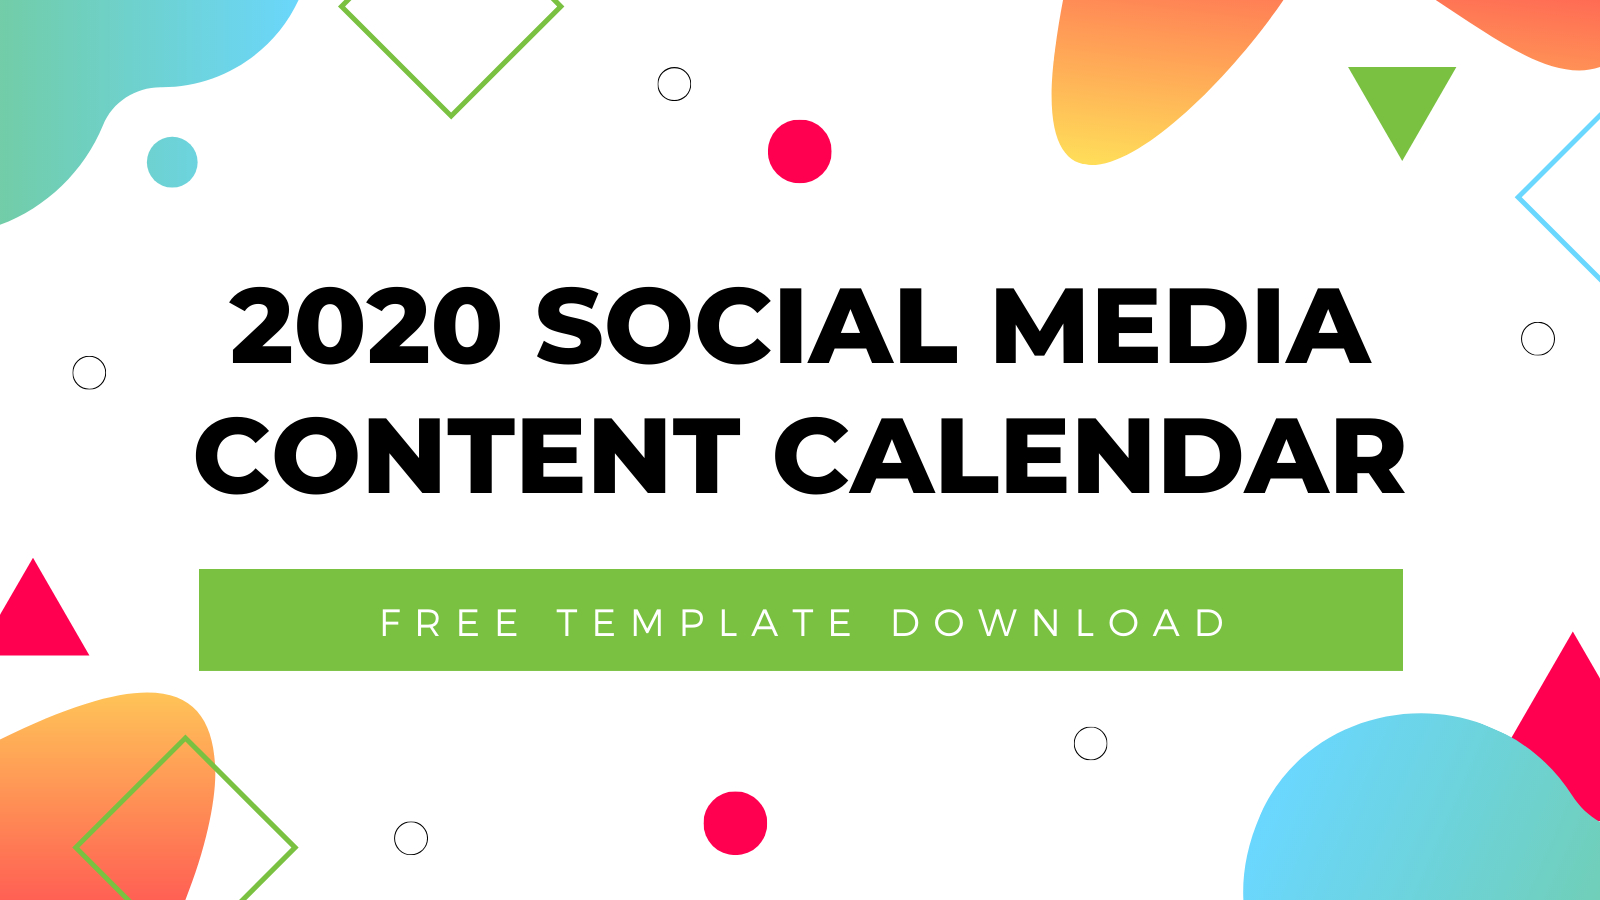 2020 Social Media Content Calendar Template | Free Download within National Food Day With Events Calender 2020 Free To Print Up